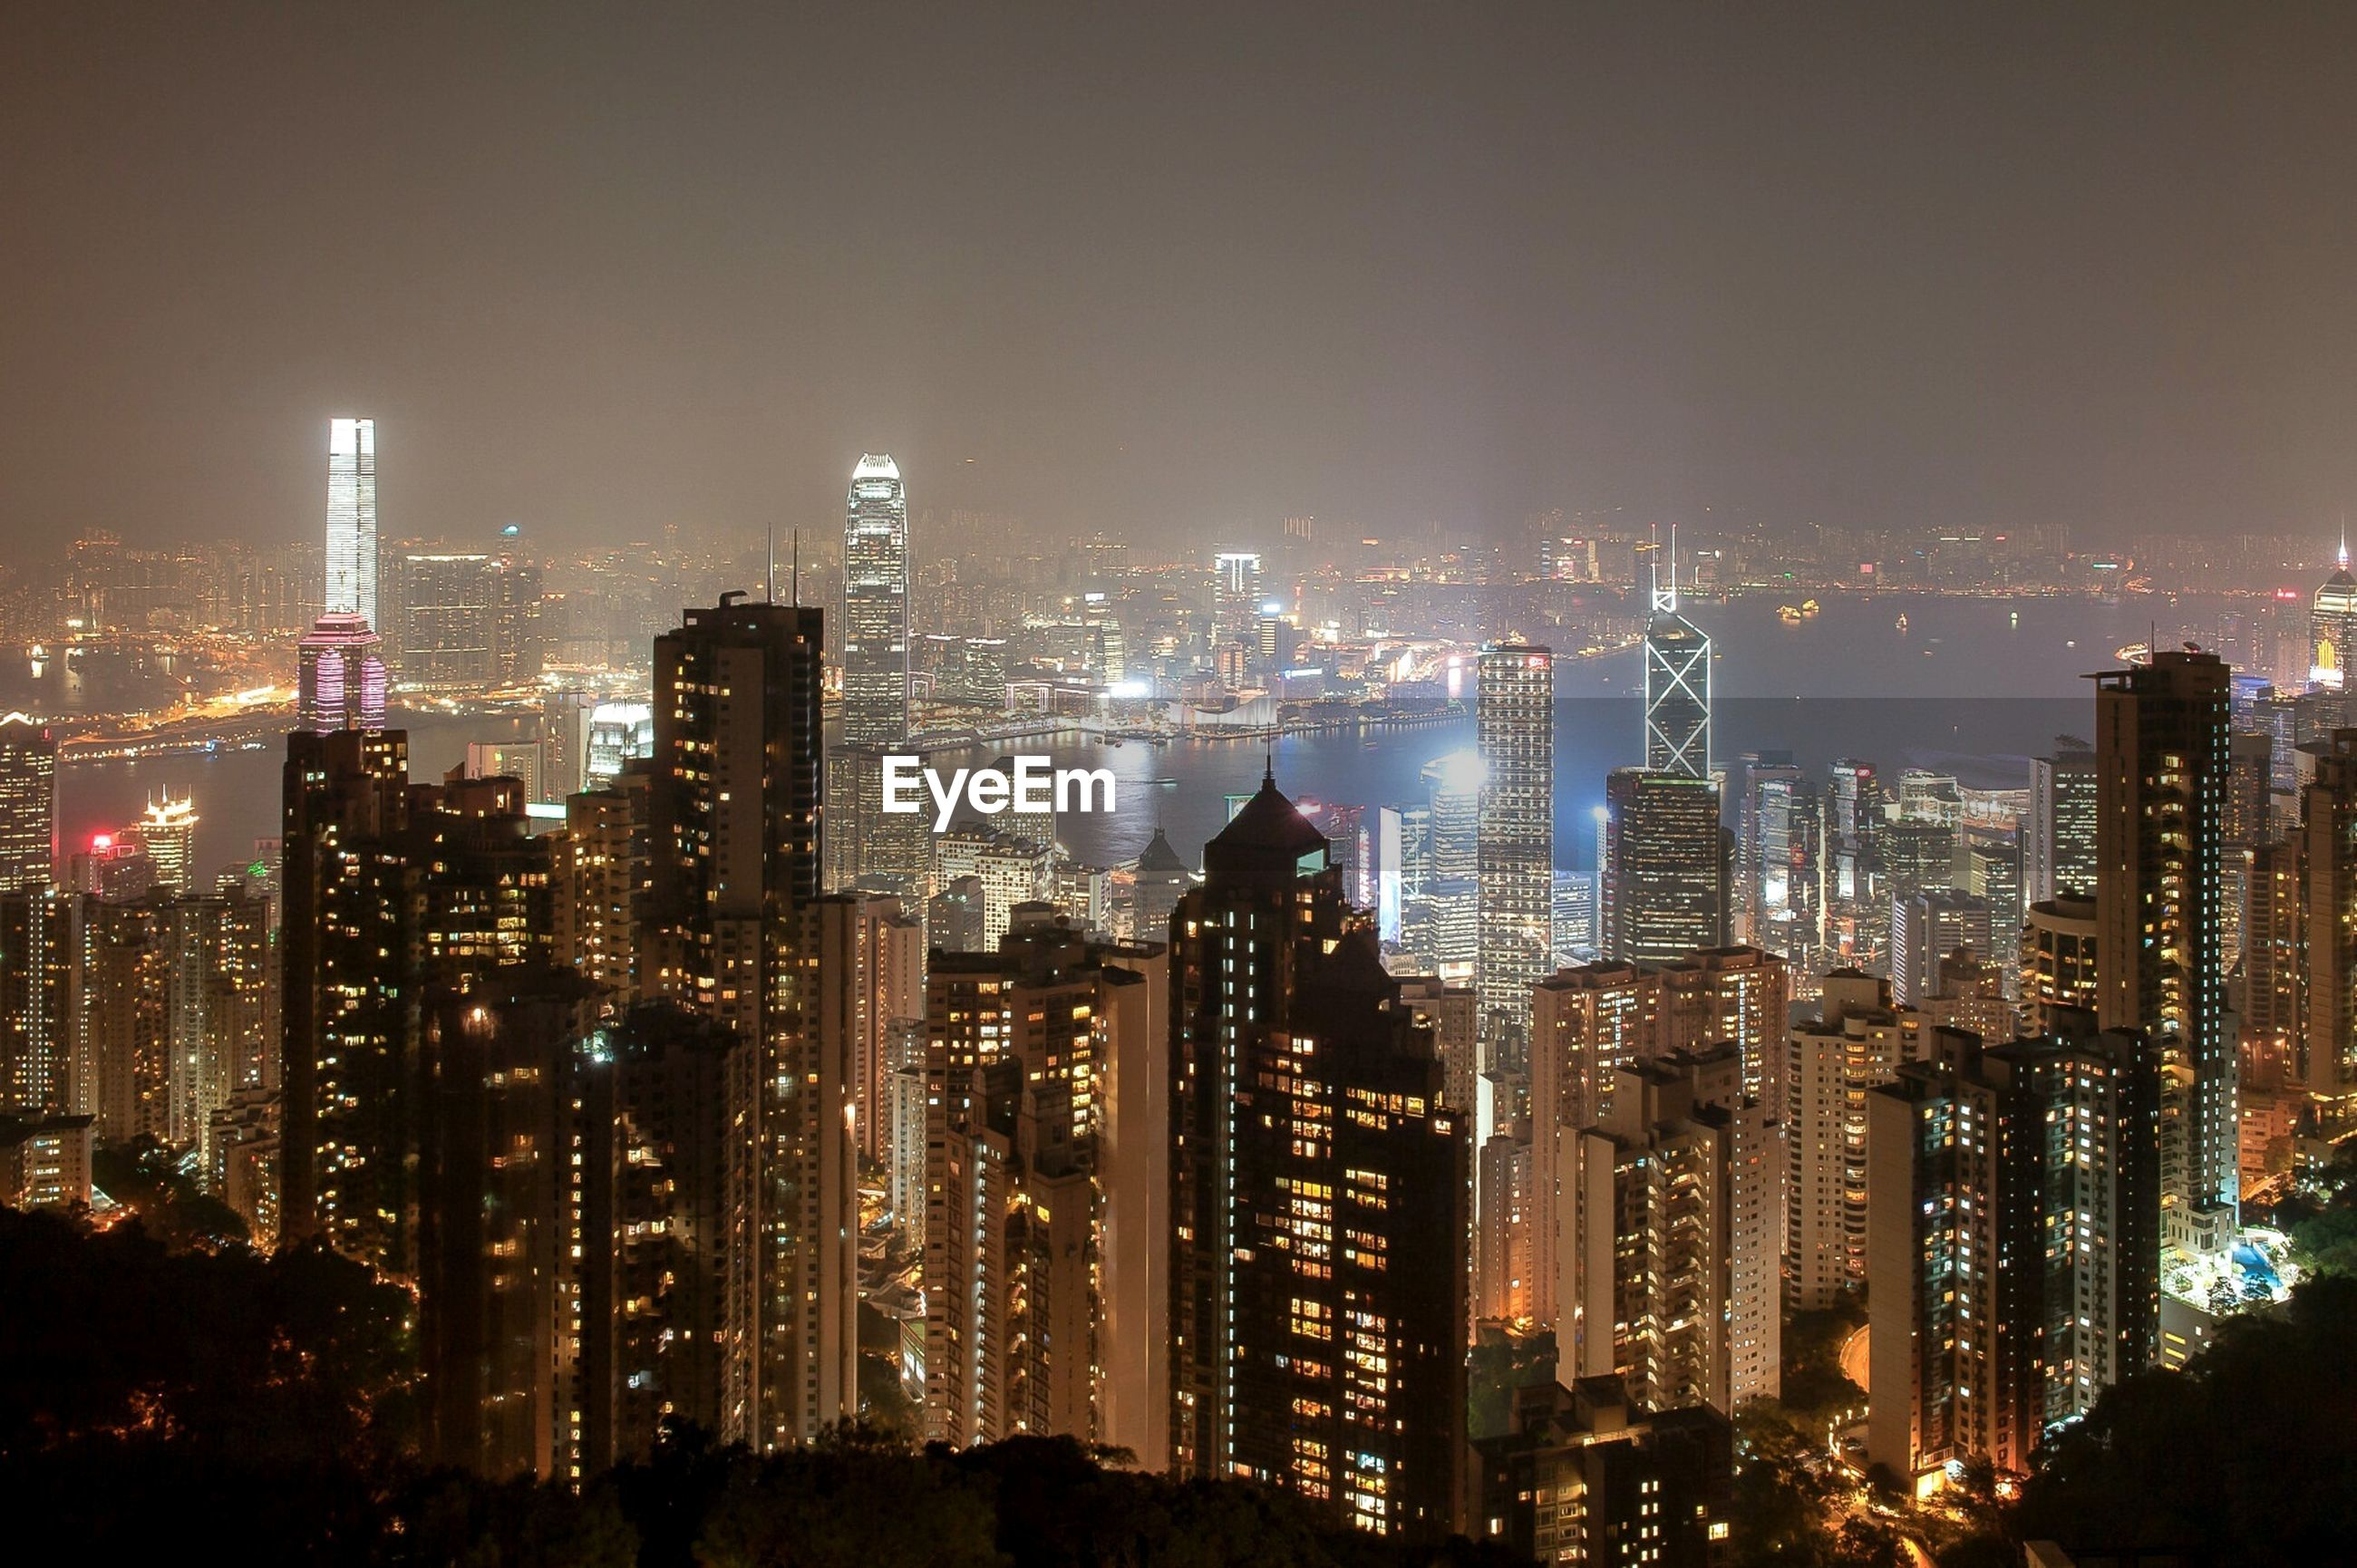 city, illuminated, night, cityscape, skyscraper, building exterior, architecture, built structure, tall - high, urban skyline, tower, modern, crowded, office building, financial district, clear sky, city life, tall, capital cities, high angle view